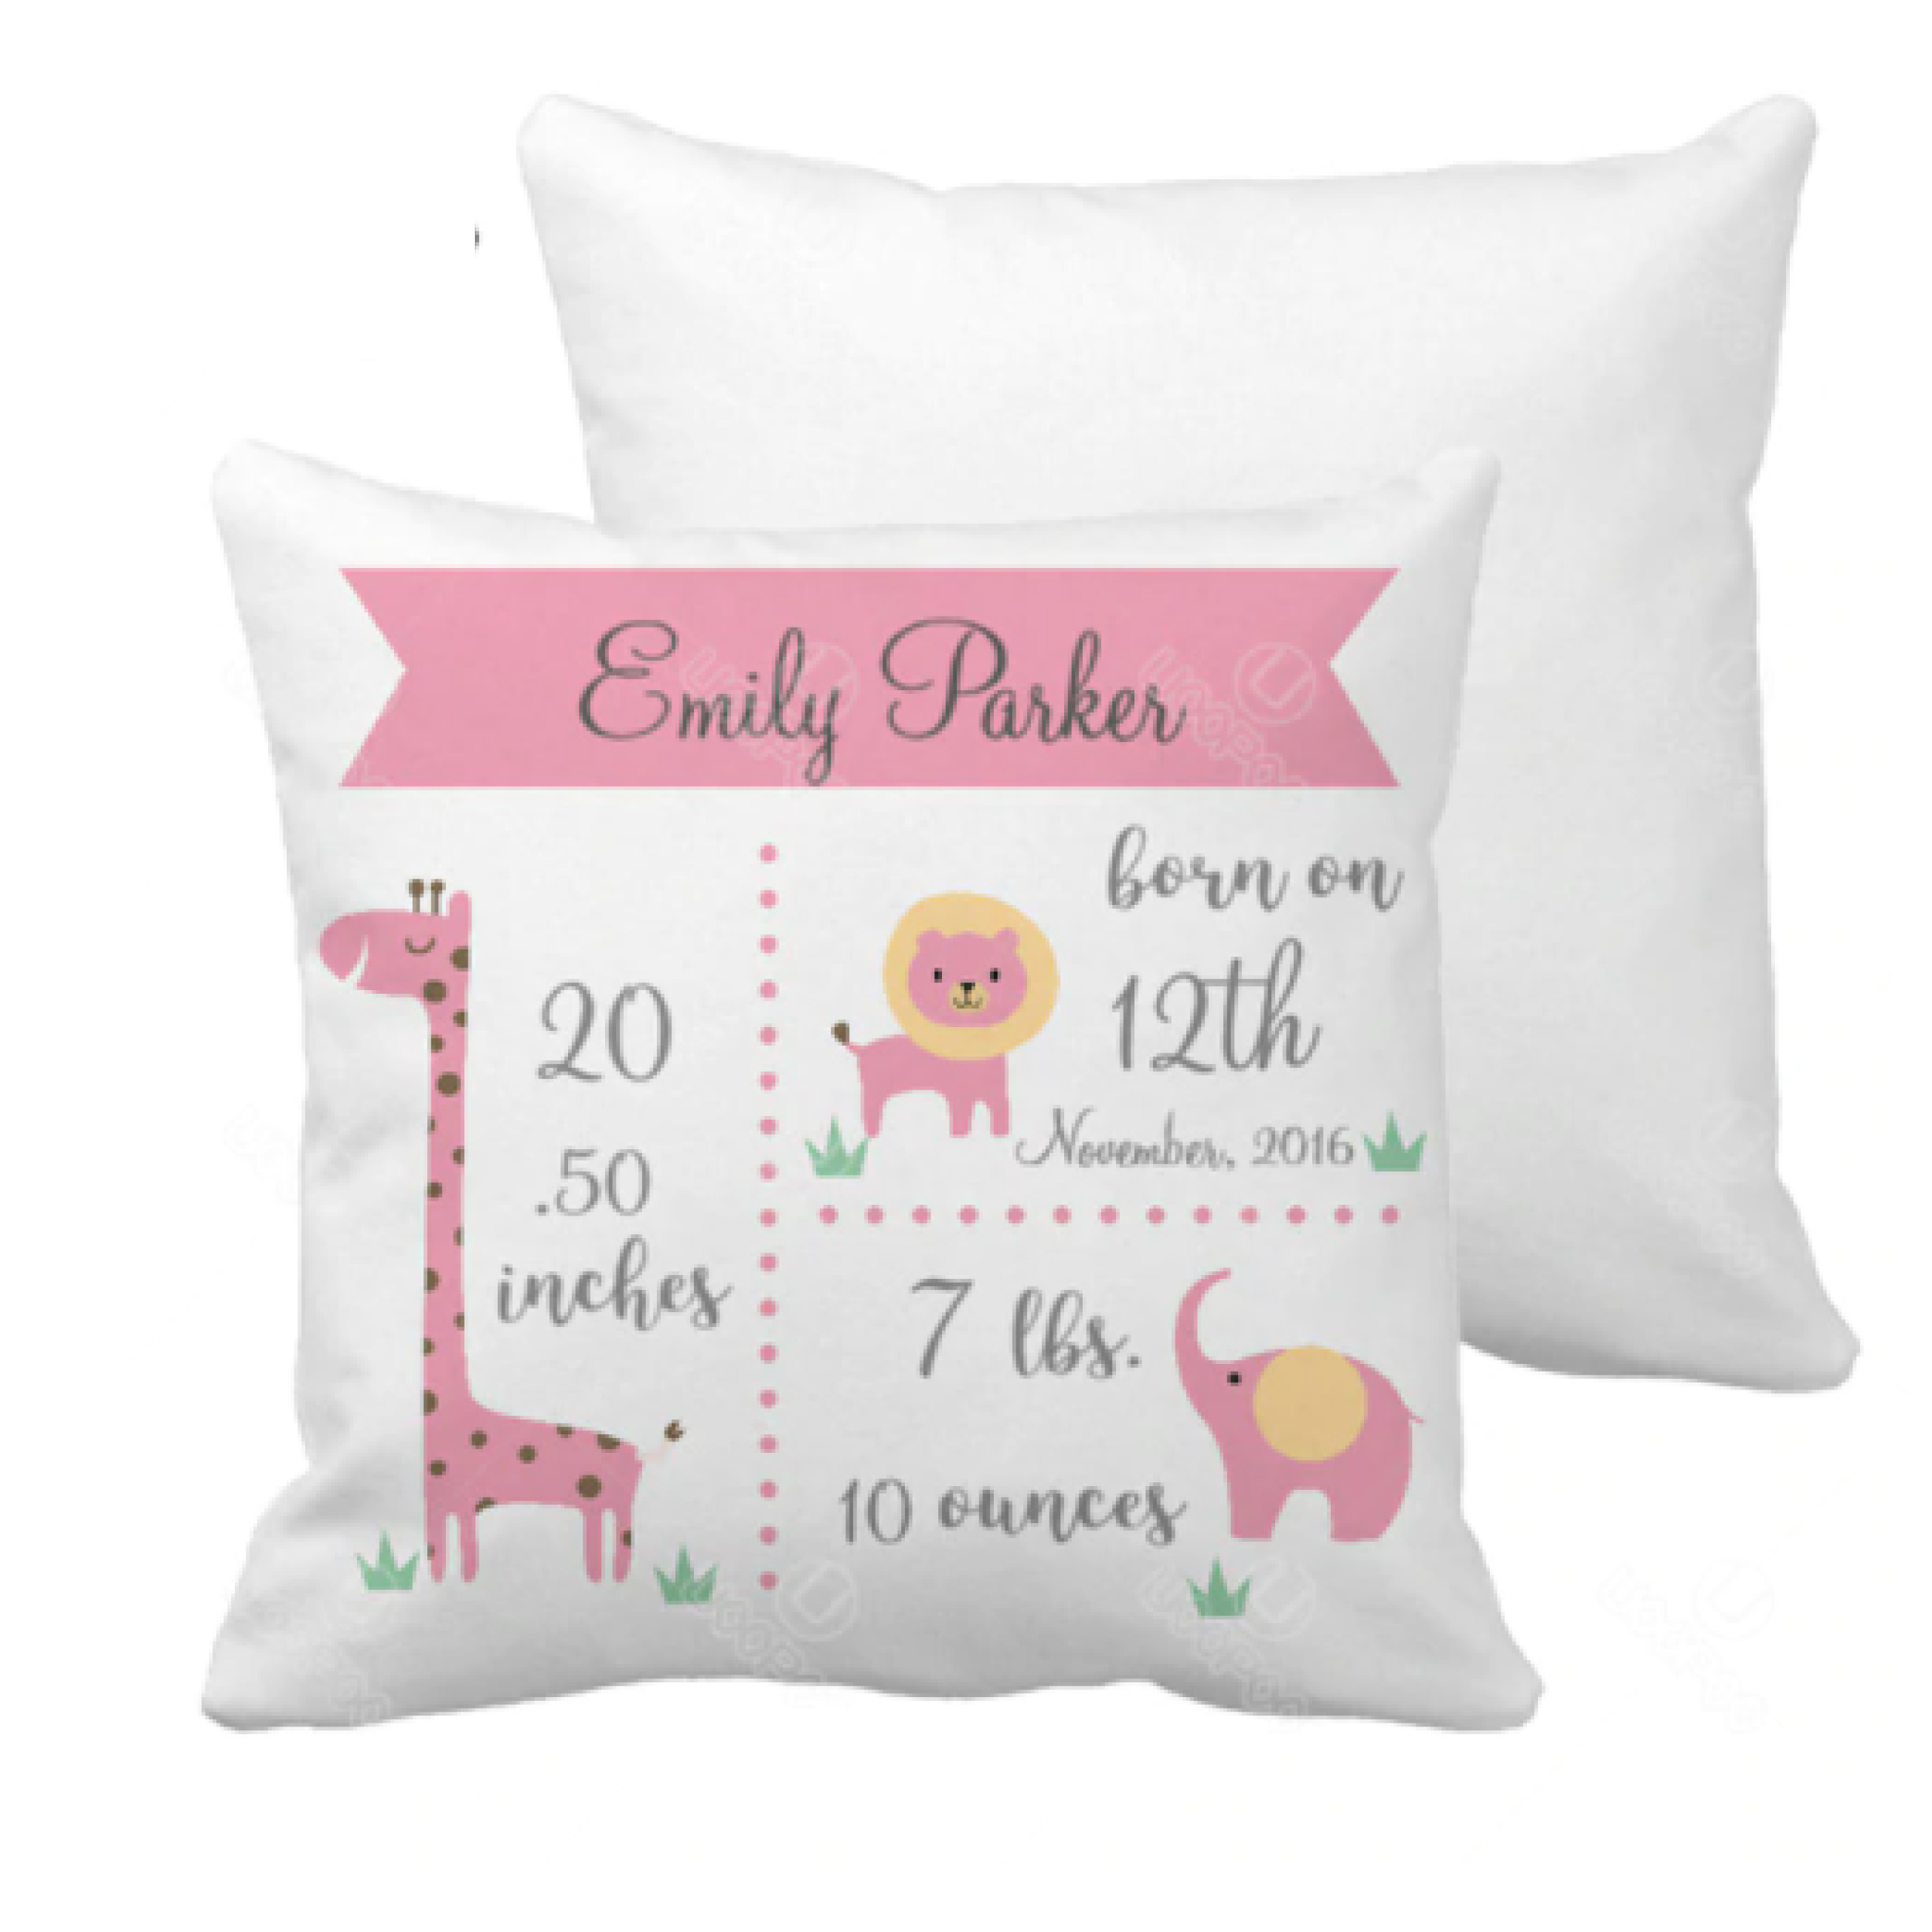 designed cushion covers customisable